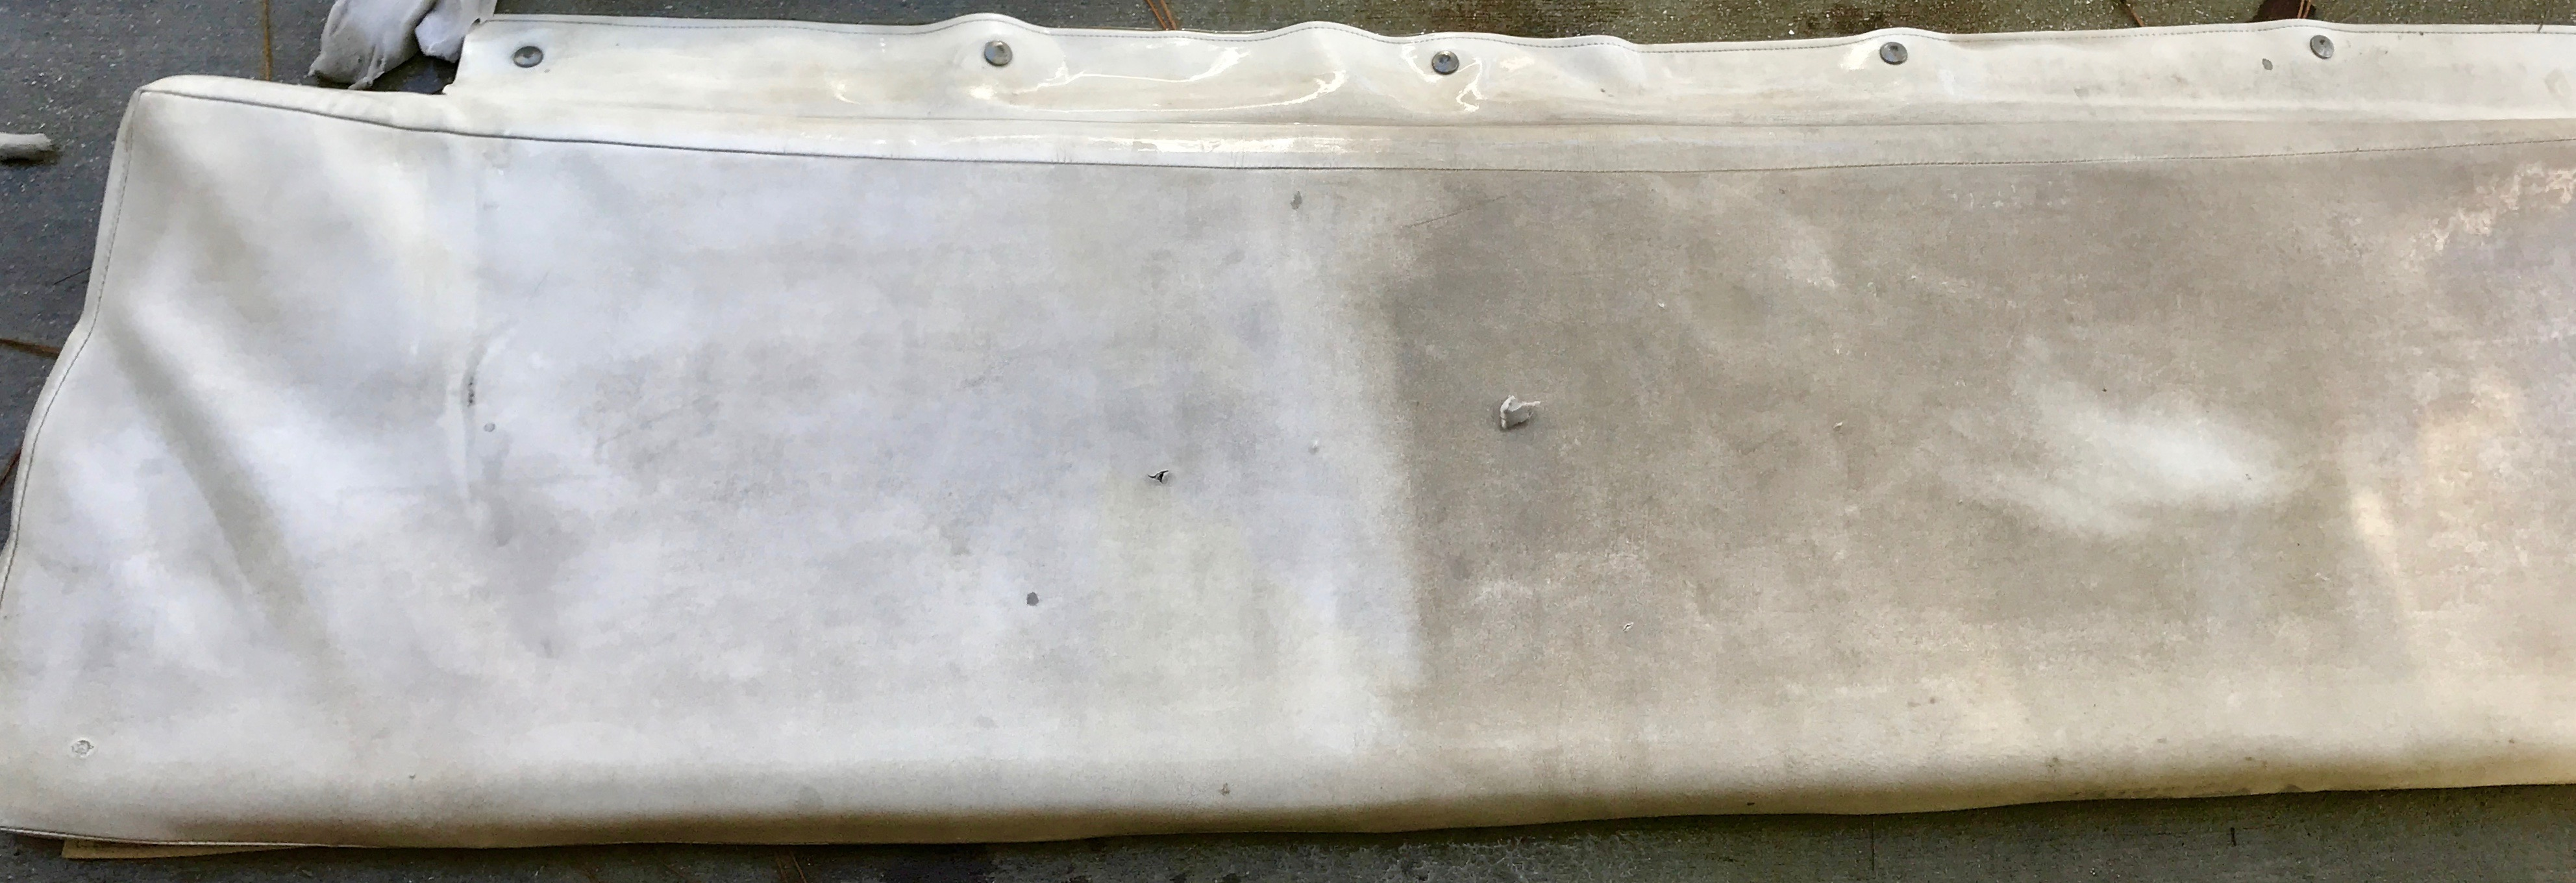 Cleaning Vinyl Boat Seats